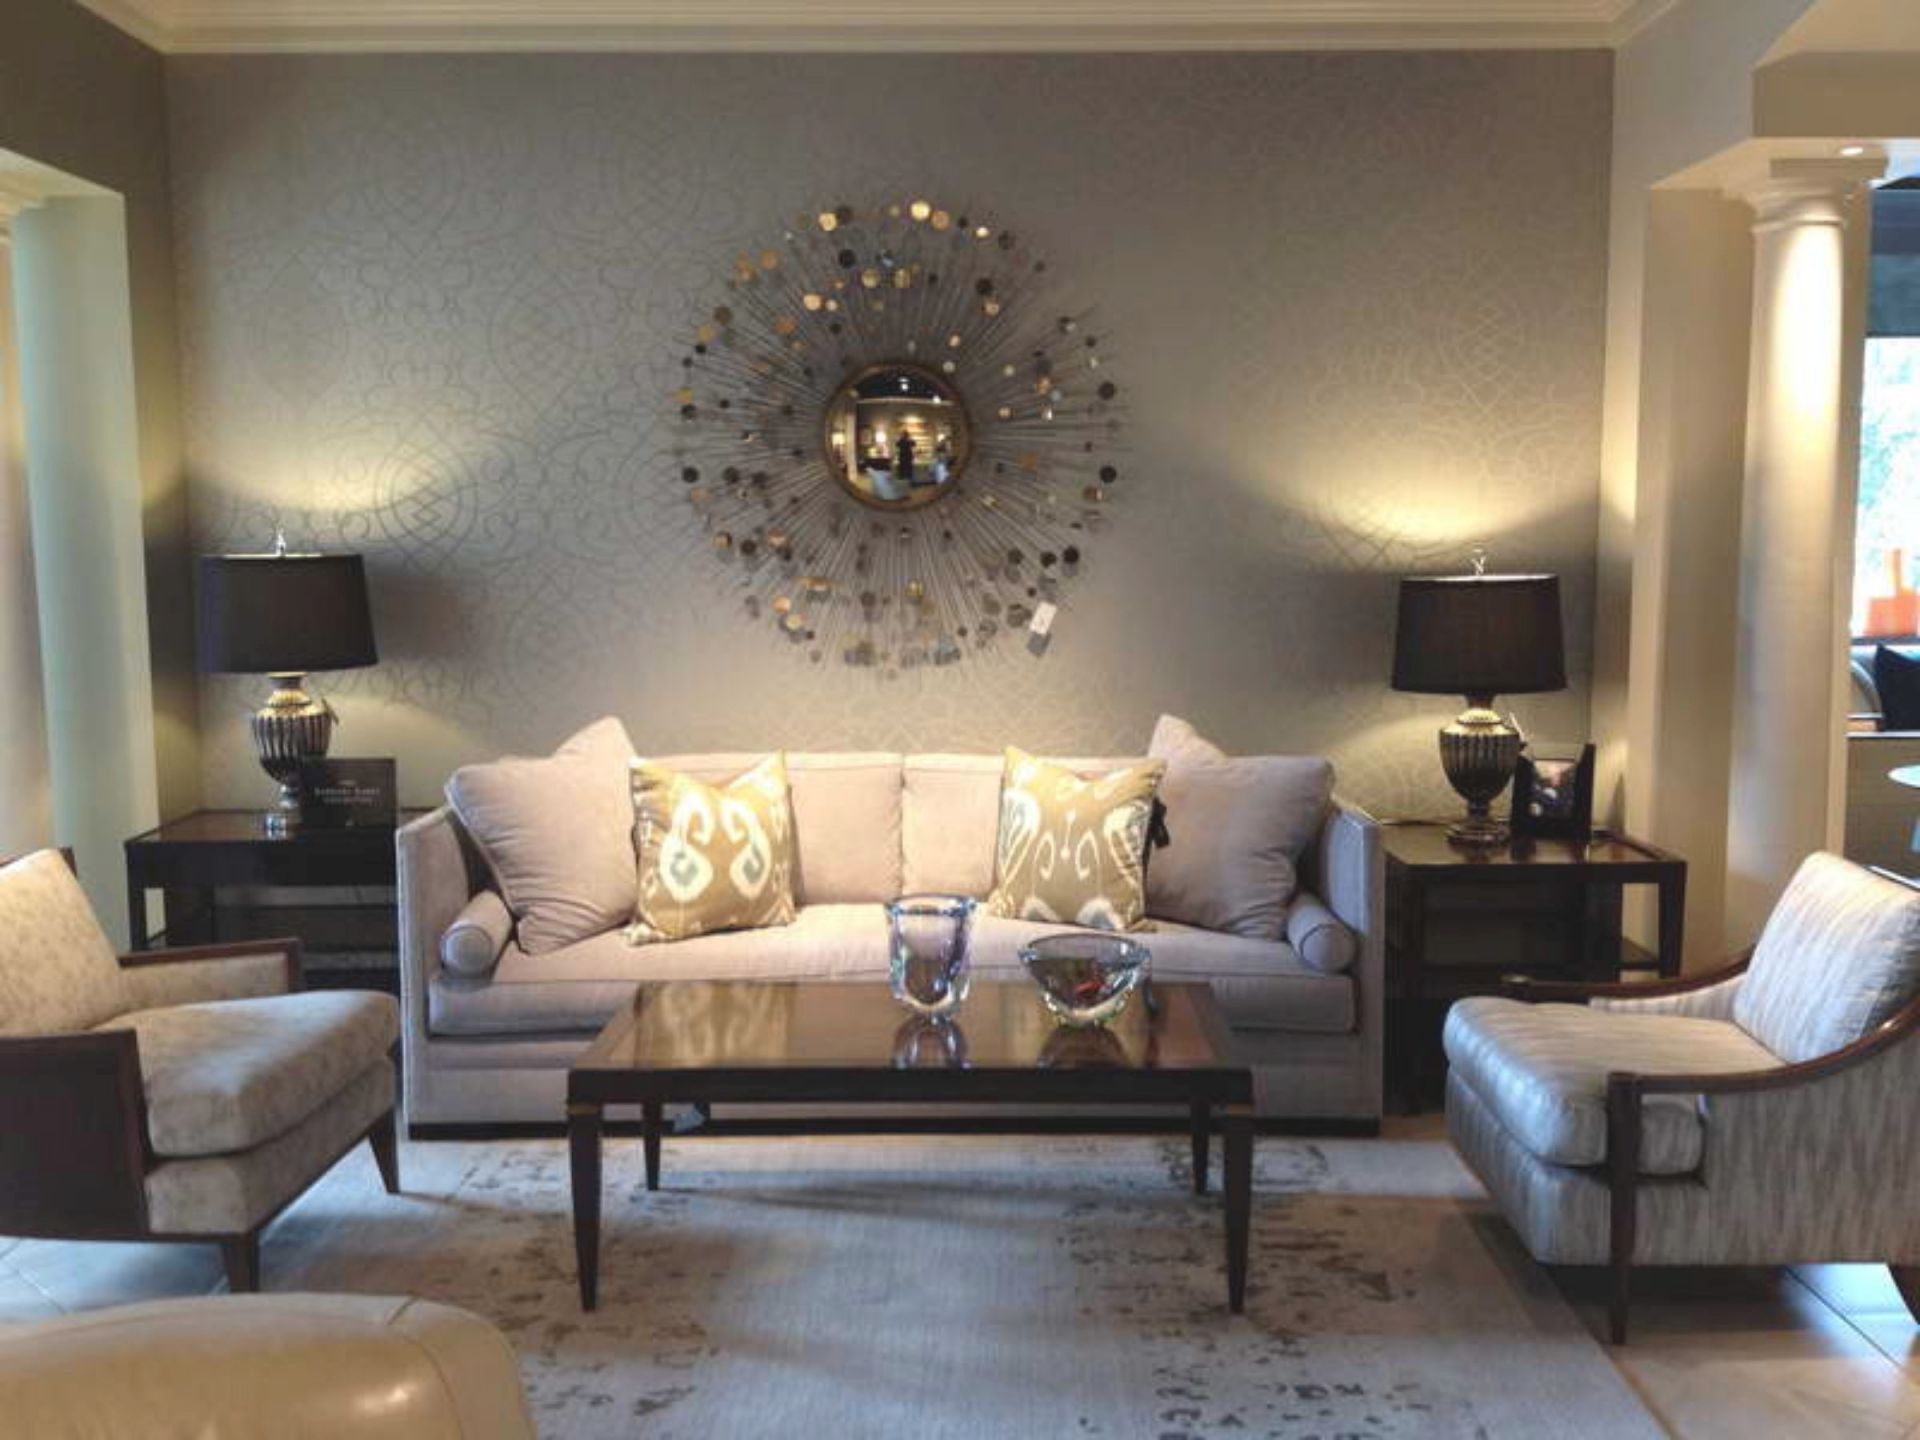 Large Wall Decor Ideas Decoration Brilliant Decorating With Regard To Large Wall Decor Ideas For Living Room Awesome Decors